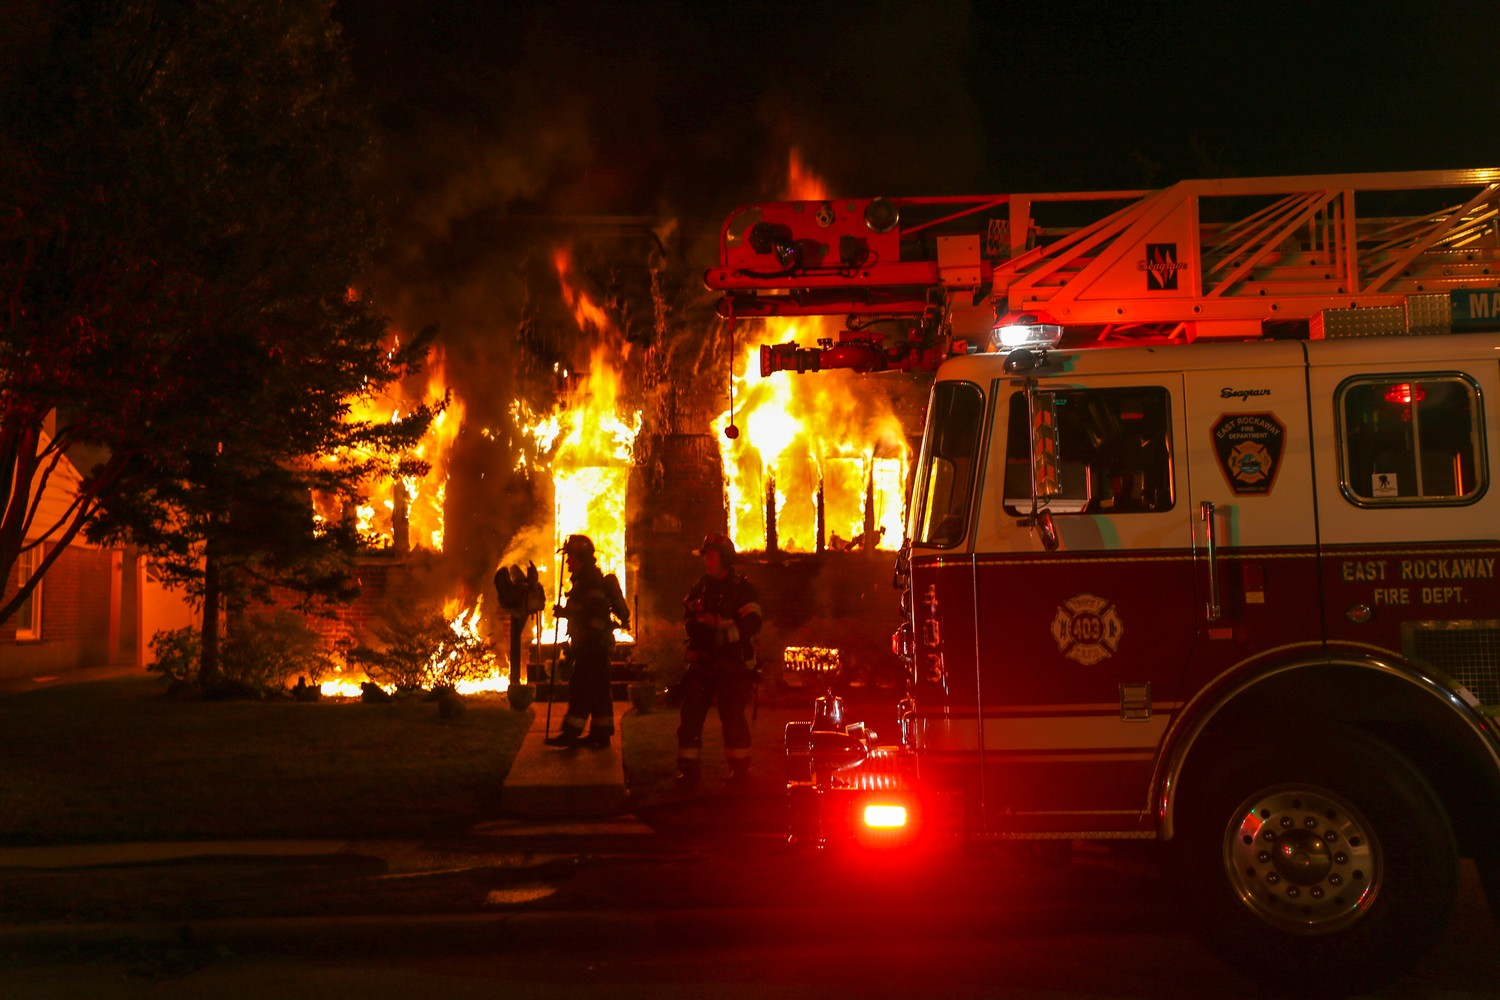 The East Rockaway Fire Department responded to the blaze at about 1:48 a.m., according to Chief Thomas Merkel Jr.